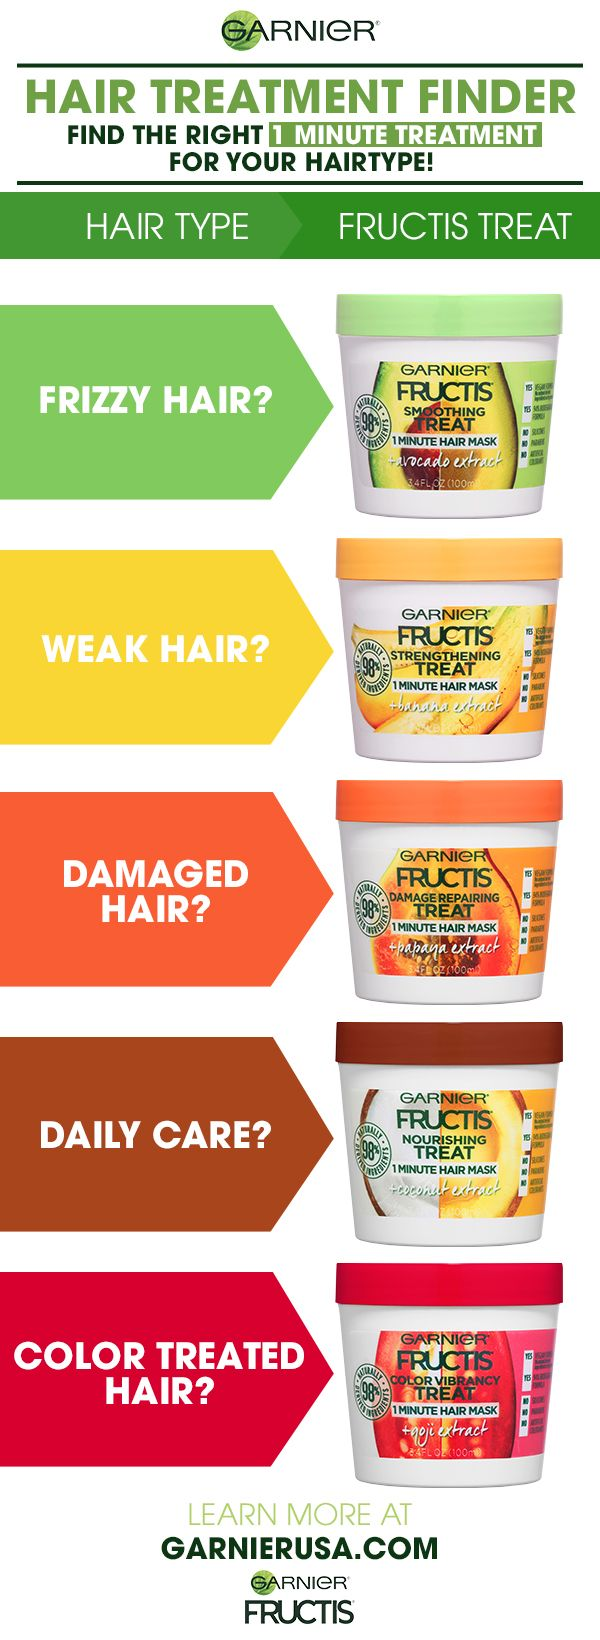 Repair Hair With Garnier Fructis Treats Which Offer Hair Care